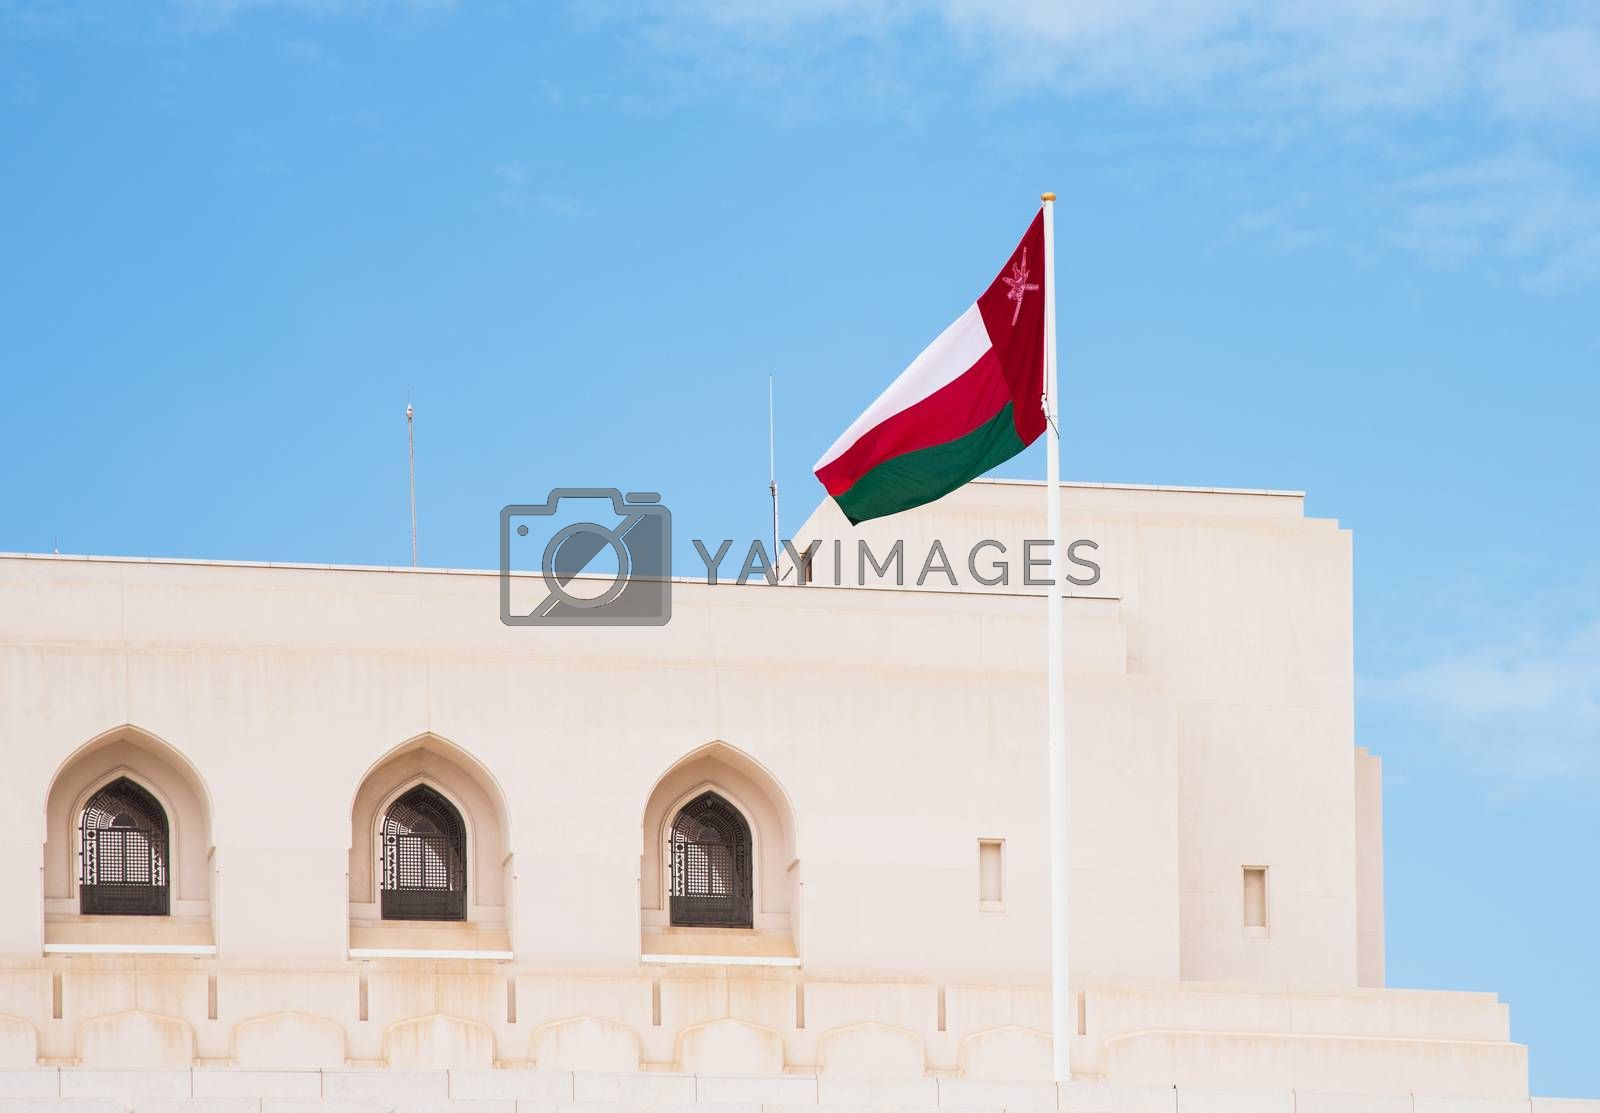 The flag of Oman at The Royal Opera House in Muscat, one of many cultural projects initiated by Sultan Qaboos bin Said al Said.